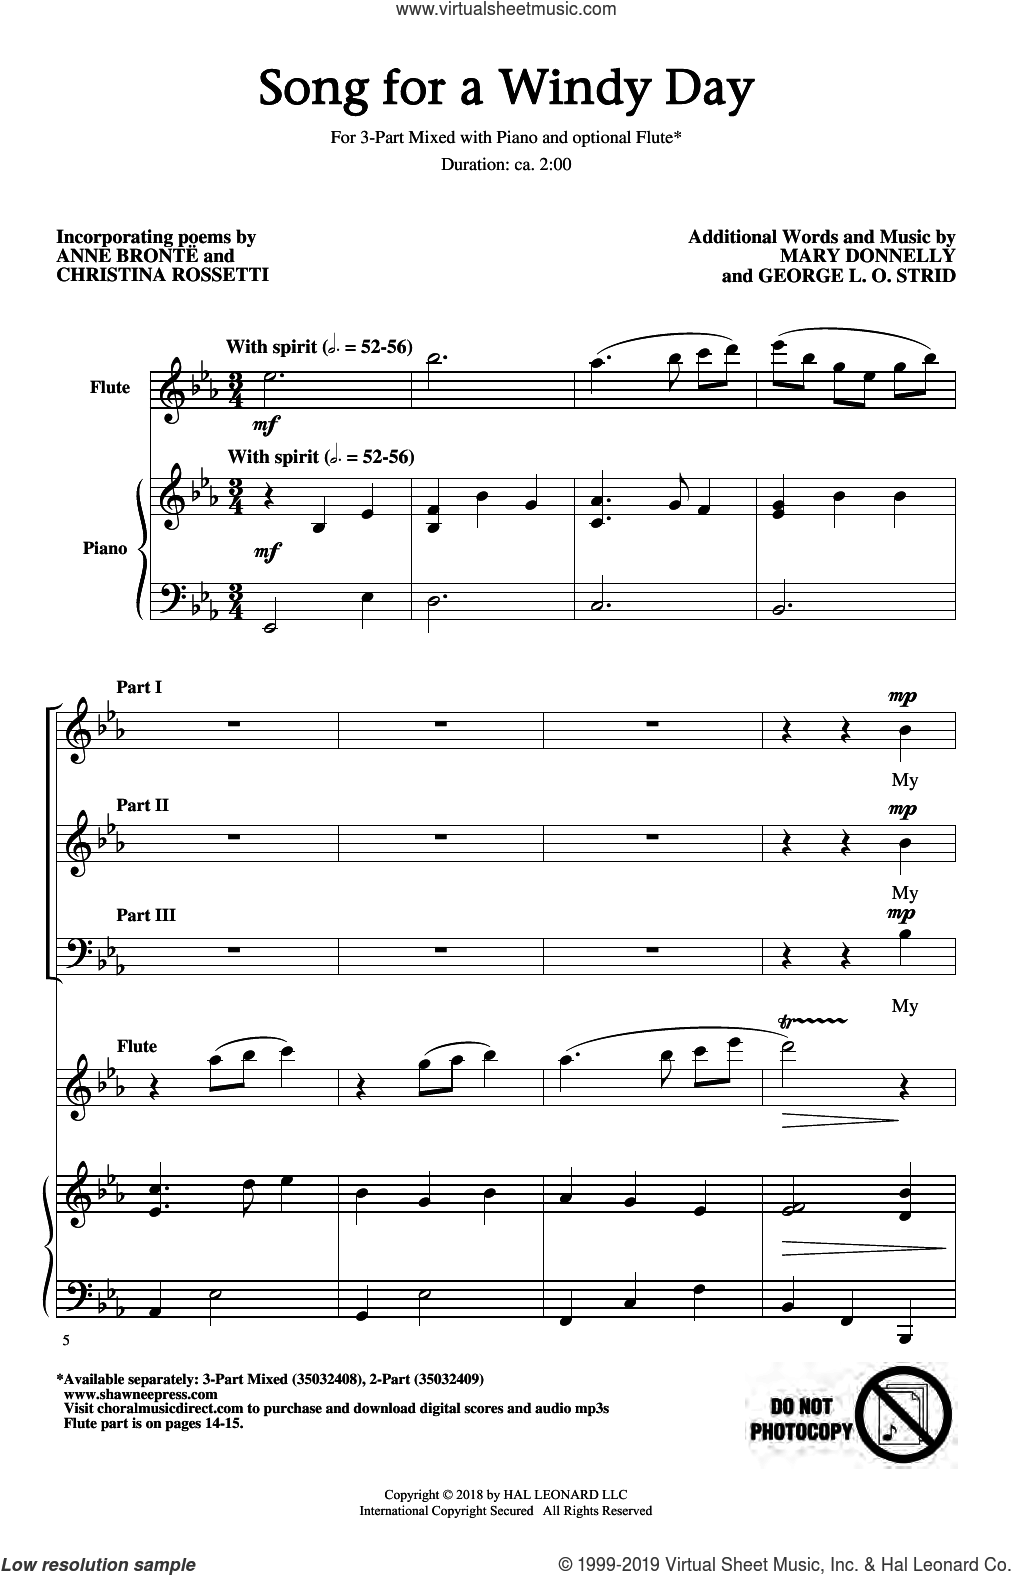 Song For A Windy Day sheet music for choir (3-Part Mixed) by Mary Donnelly, Anne Bronte, Christina Rossetti, George L.O. Strid and Mary Donnelly & George L.O. Strid, intermediate skill level